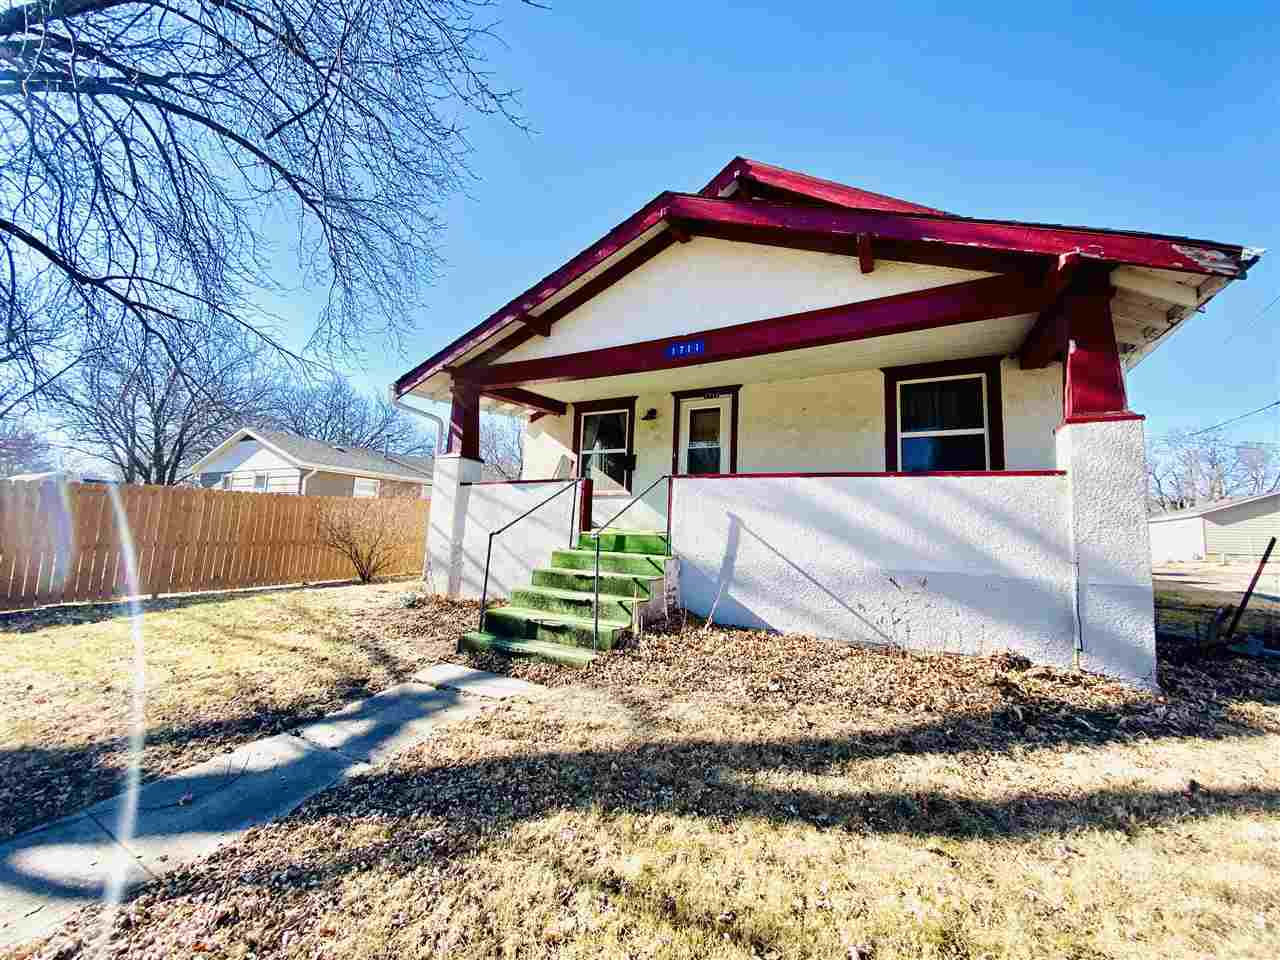 """Wonderful 2-3 bedroom, 1 bath Bungalow with original hardwood floors and gorgeous built-ins.  This is a fixer upper being sold """"as-is"""".  Lots of potential with main floor laundry, 2 car garage, and unfinished basement."""